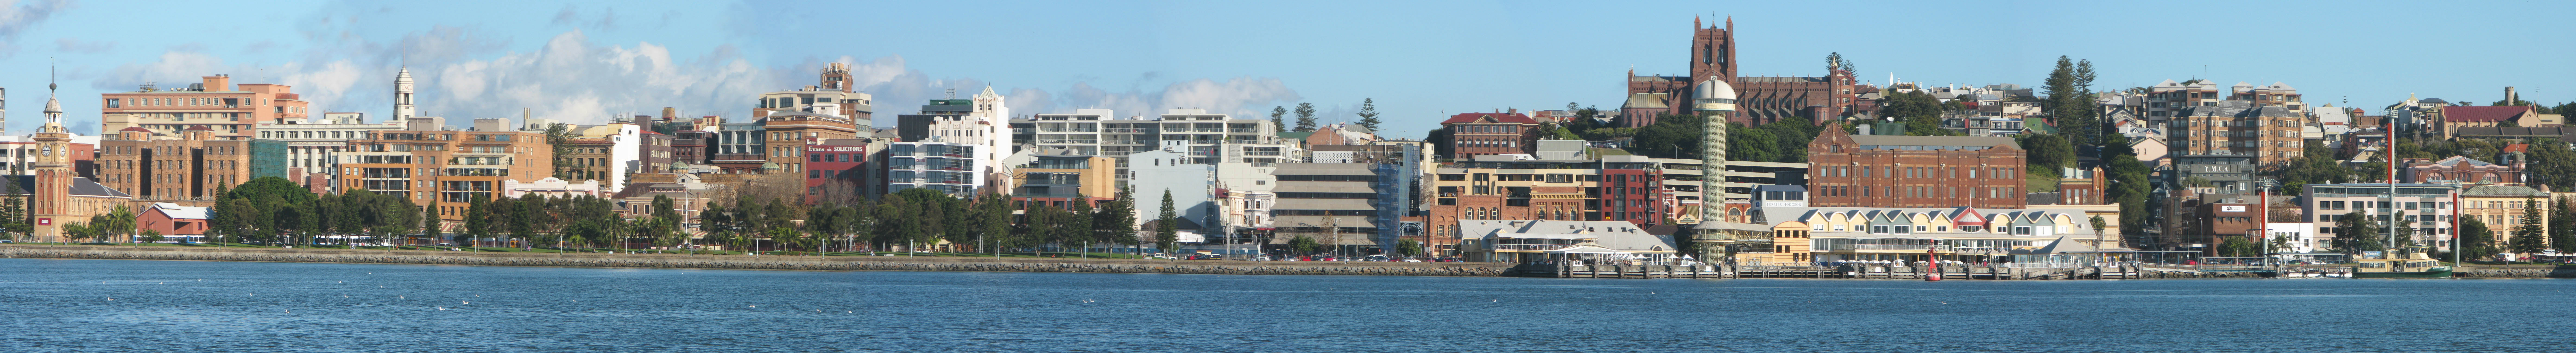 Newcastle foreshore.jpg